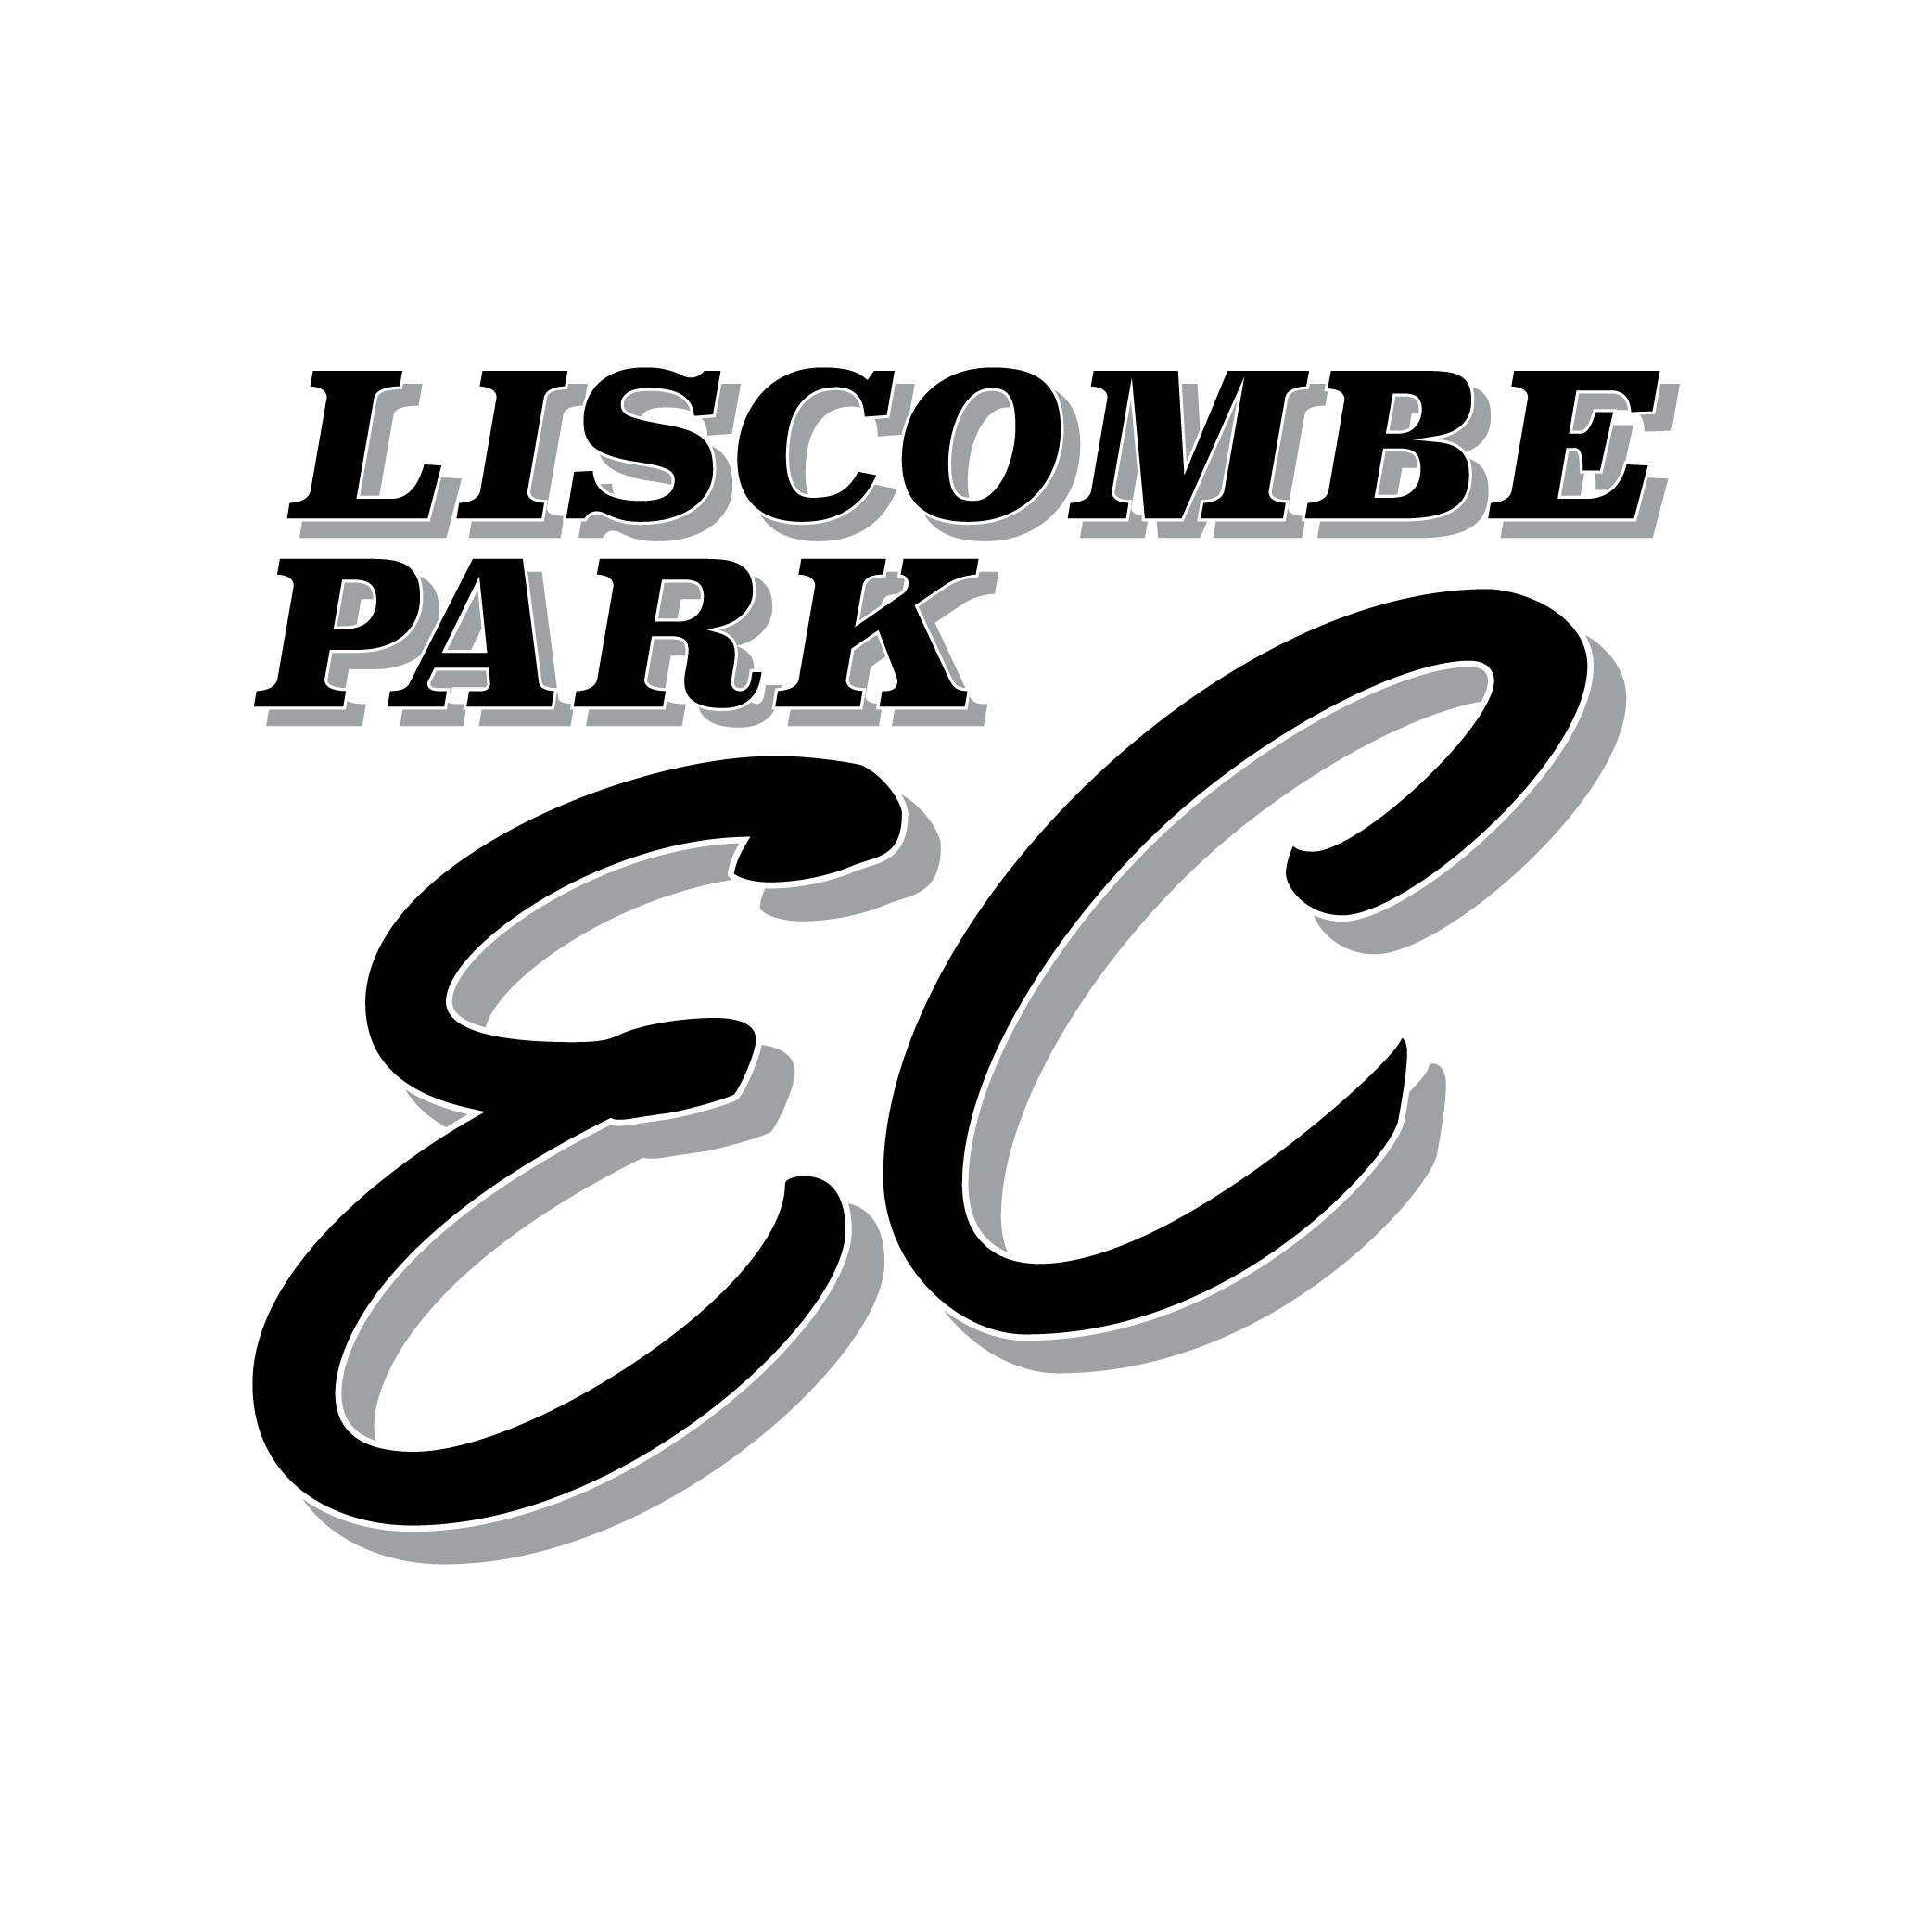 This is an image showing Liscombe Park Equestrian Centres logo